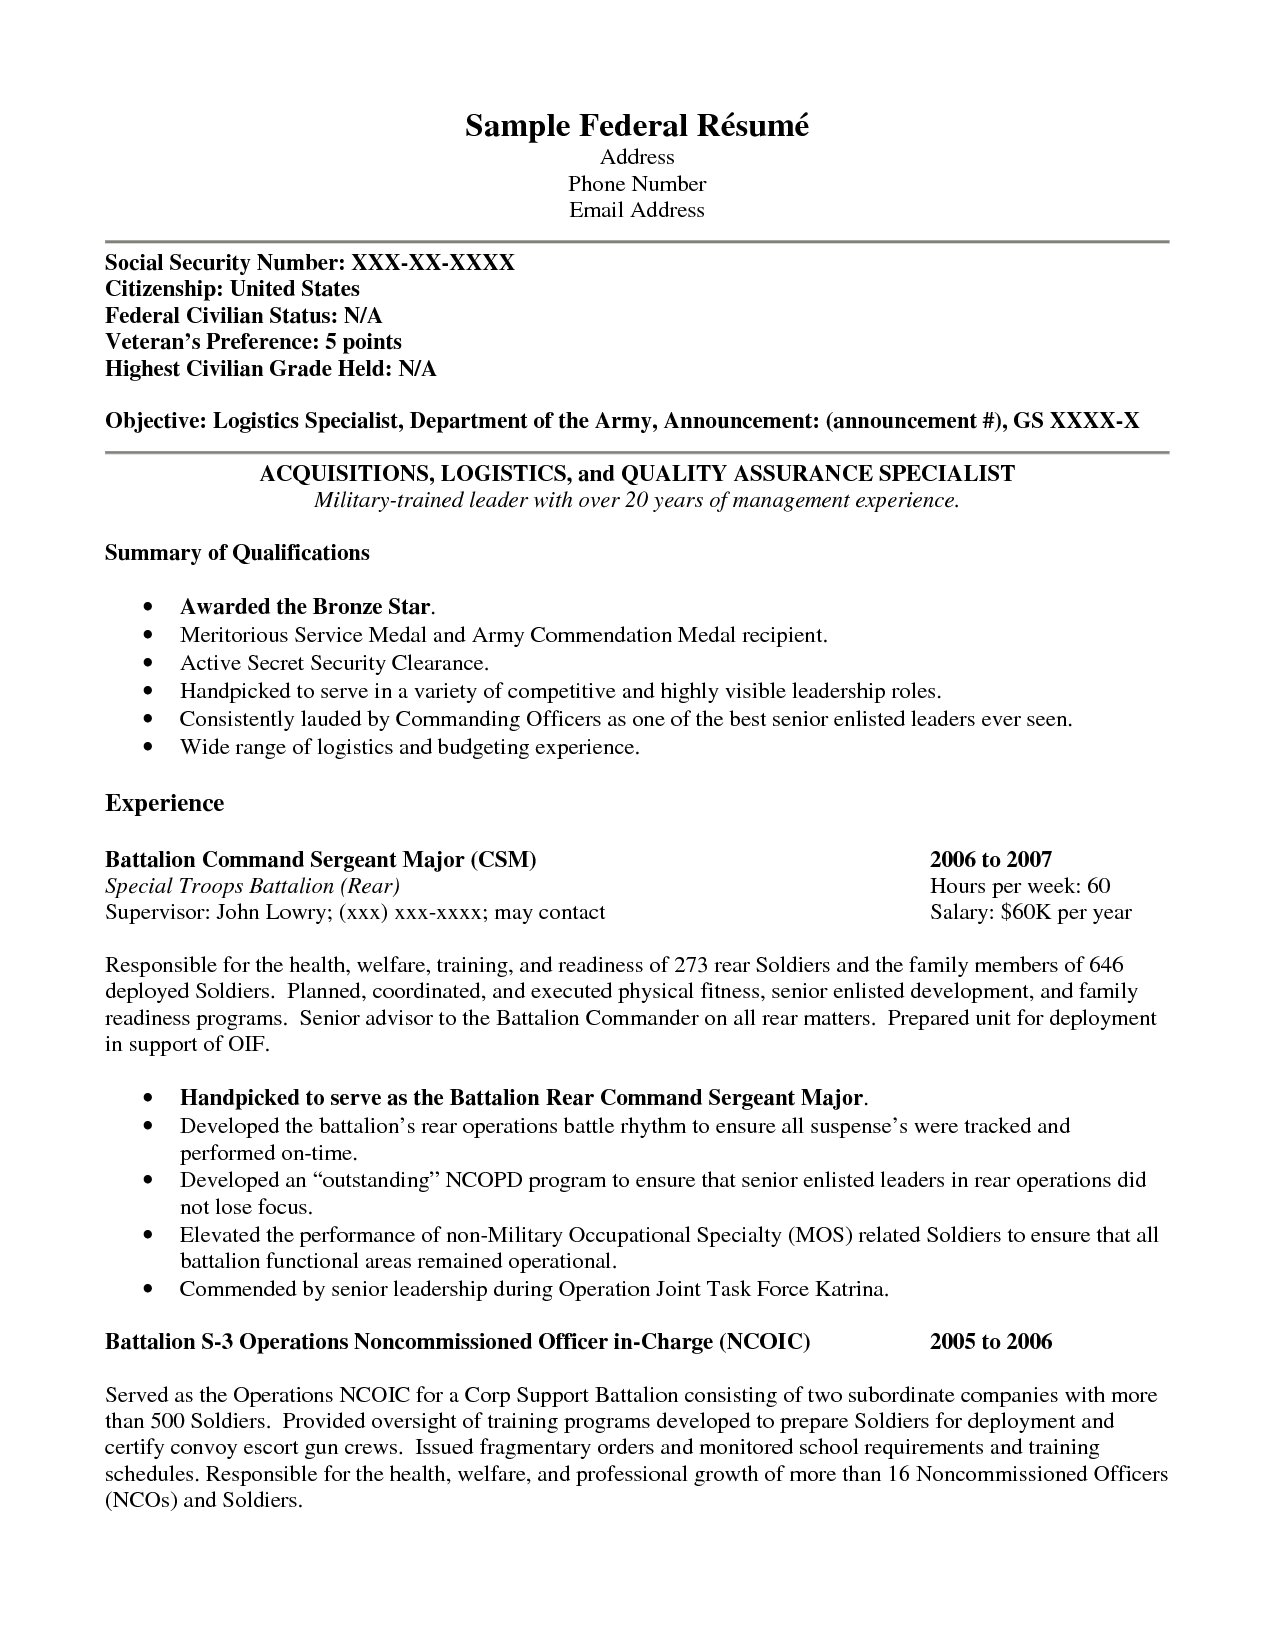 Lovely Free Military Resume Builder Templates And Service For Veterans Veteran  Template How Write Logistics Specialist Army  Veteran Resume Builder